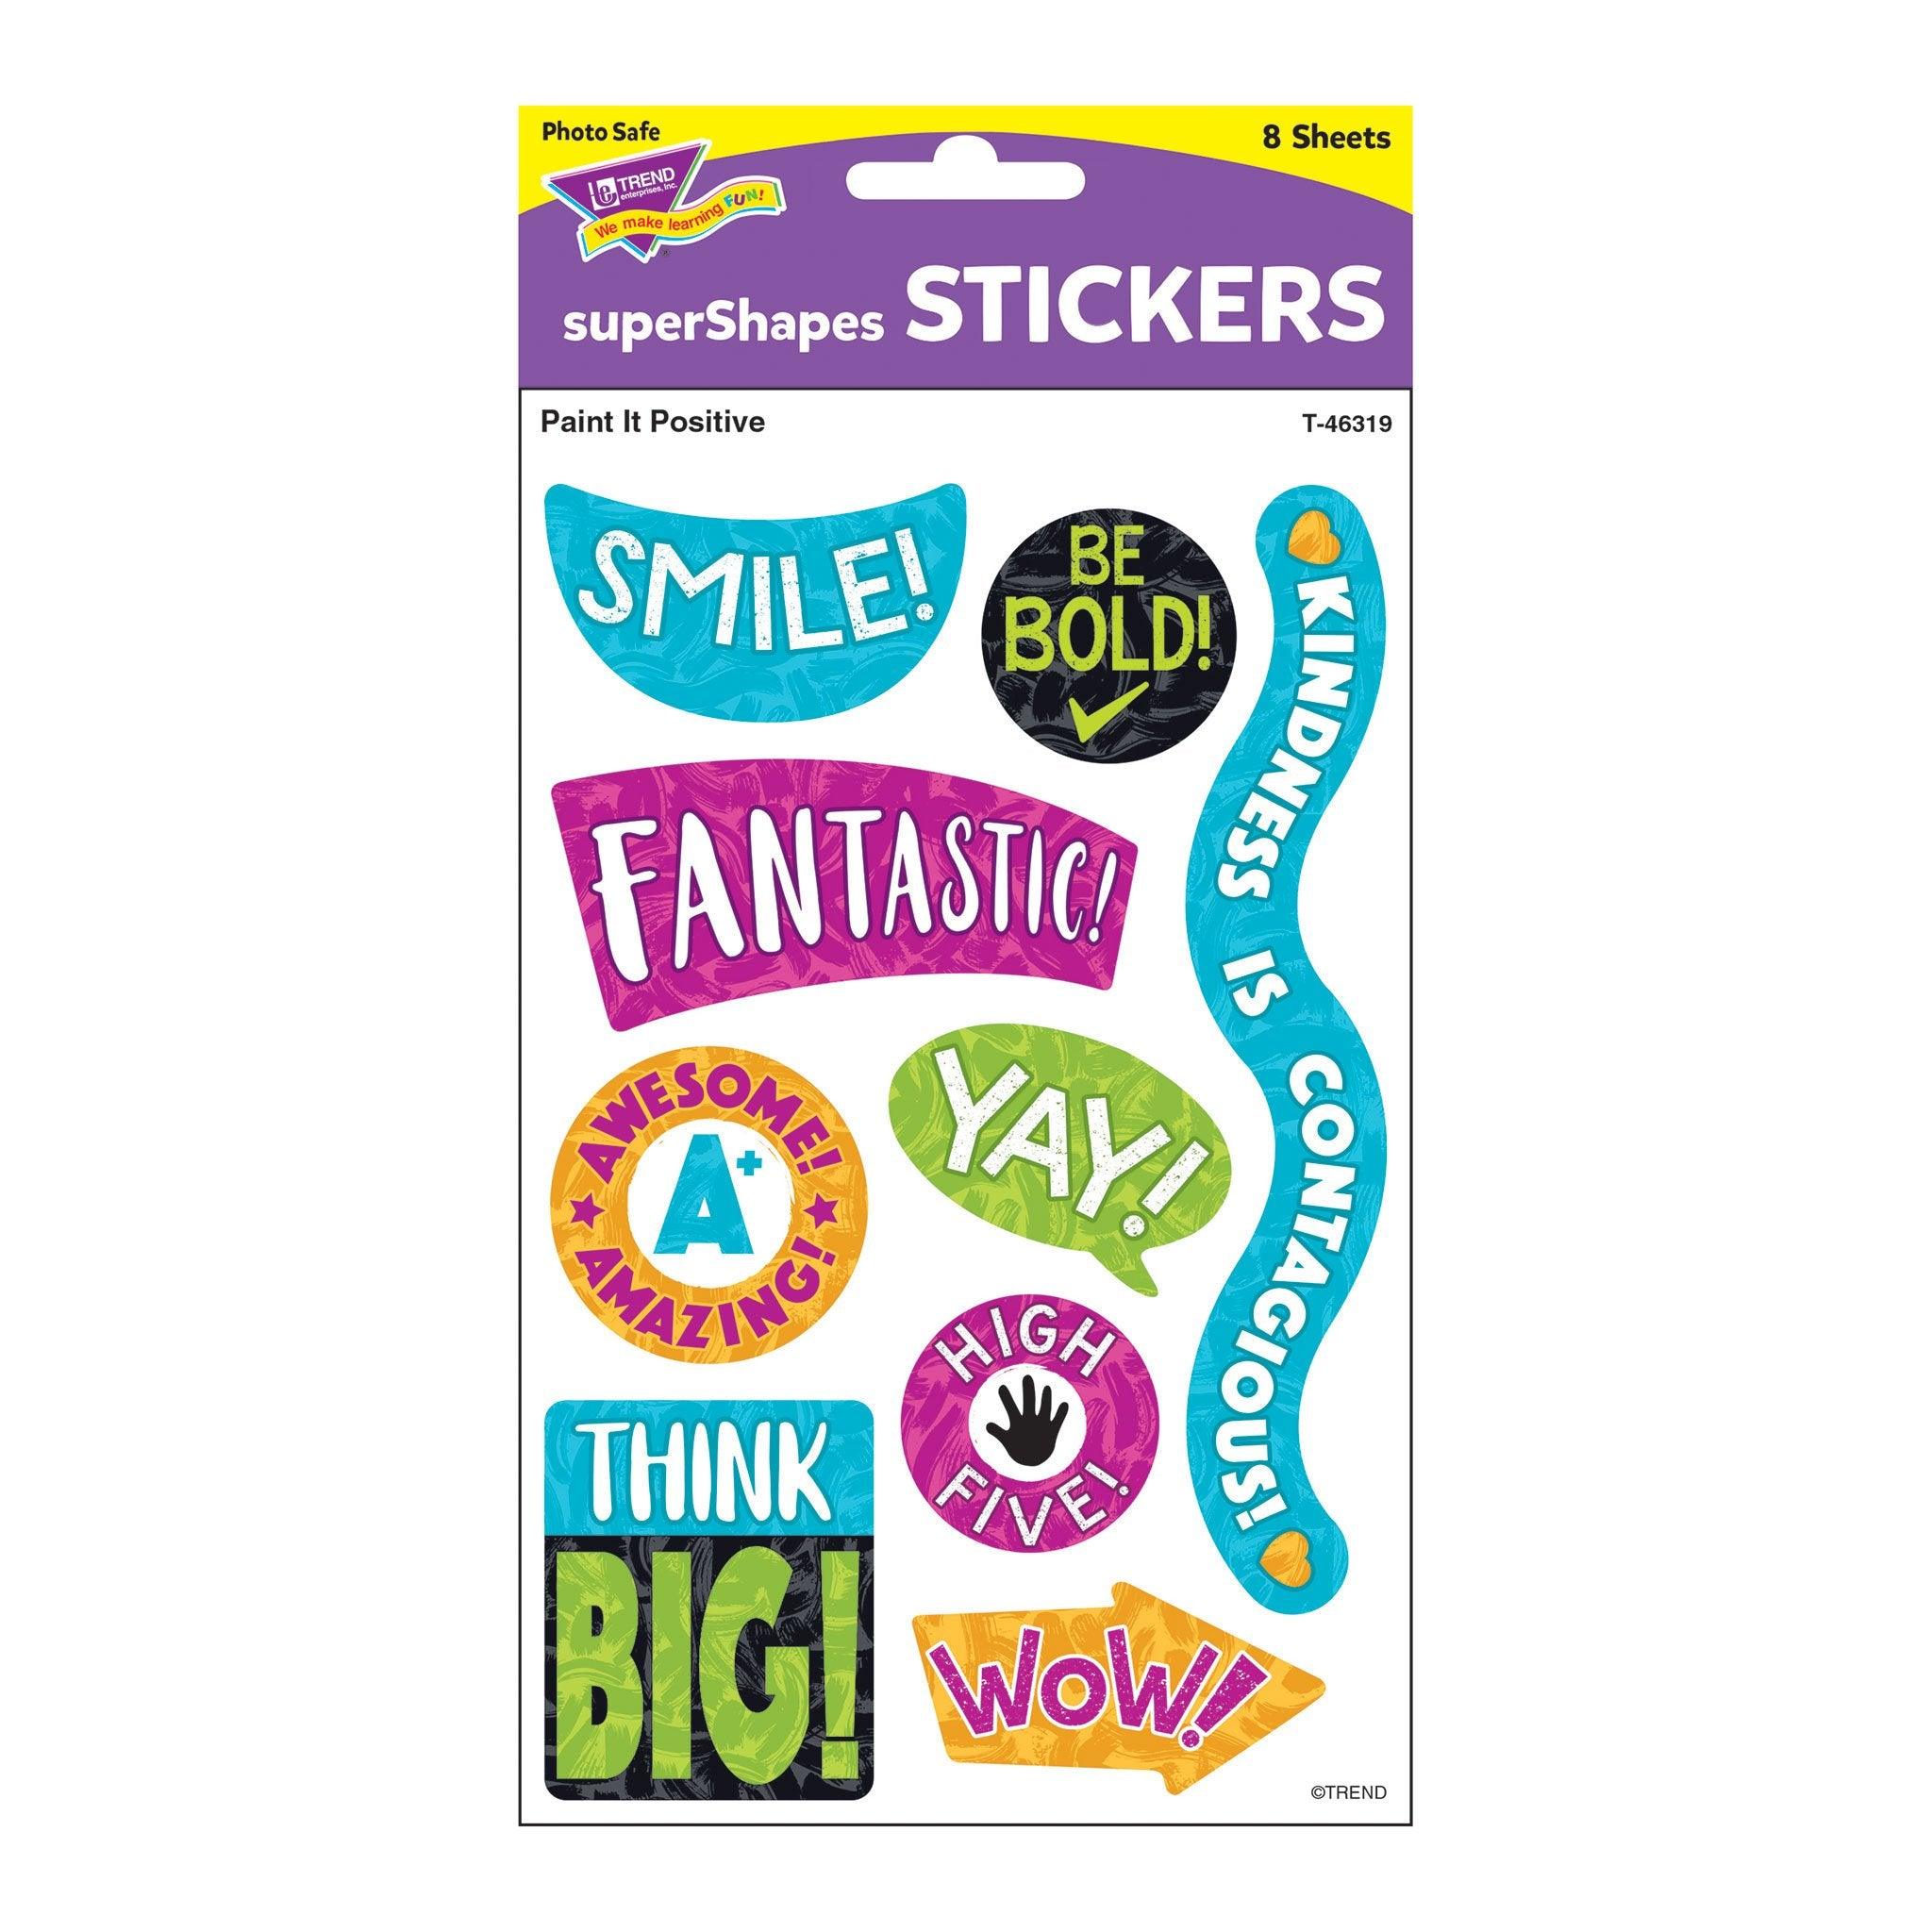 T46319 Stickers Harmony Paint It Positive Package